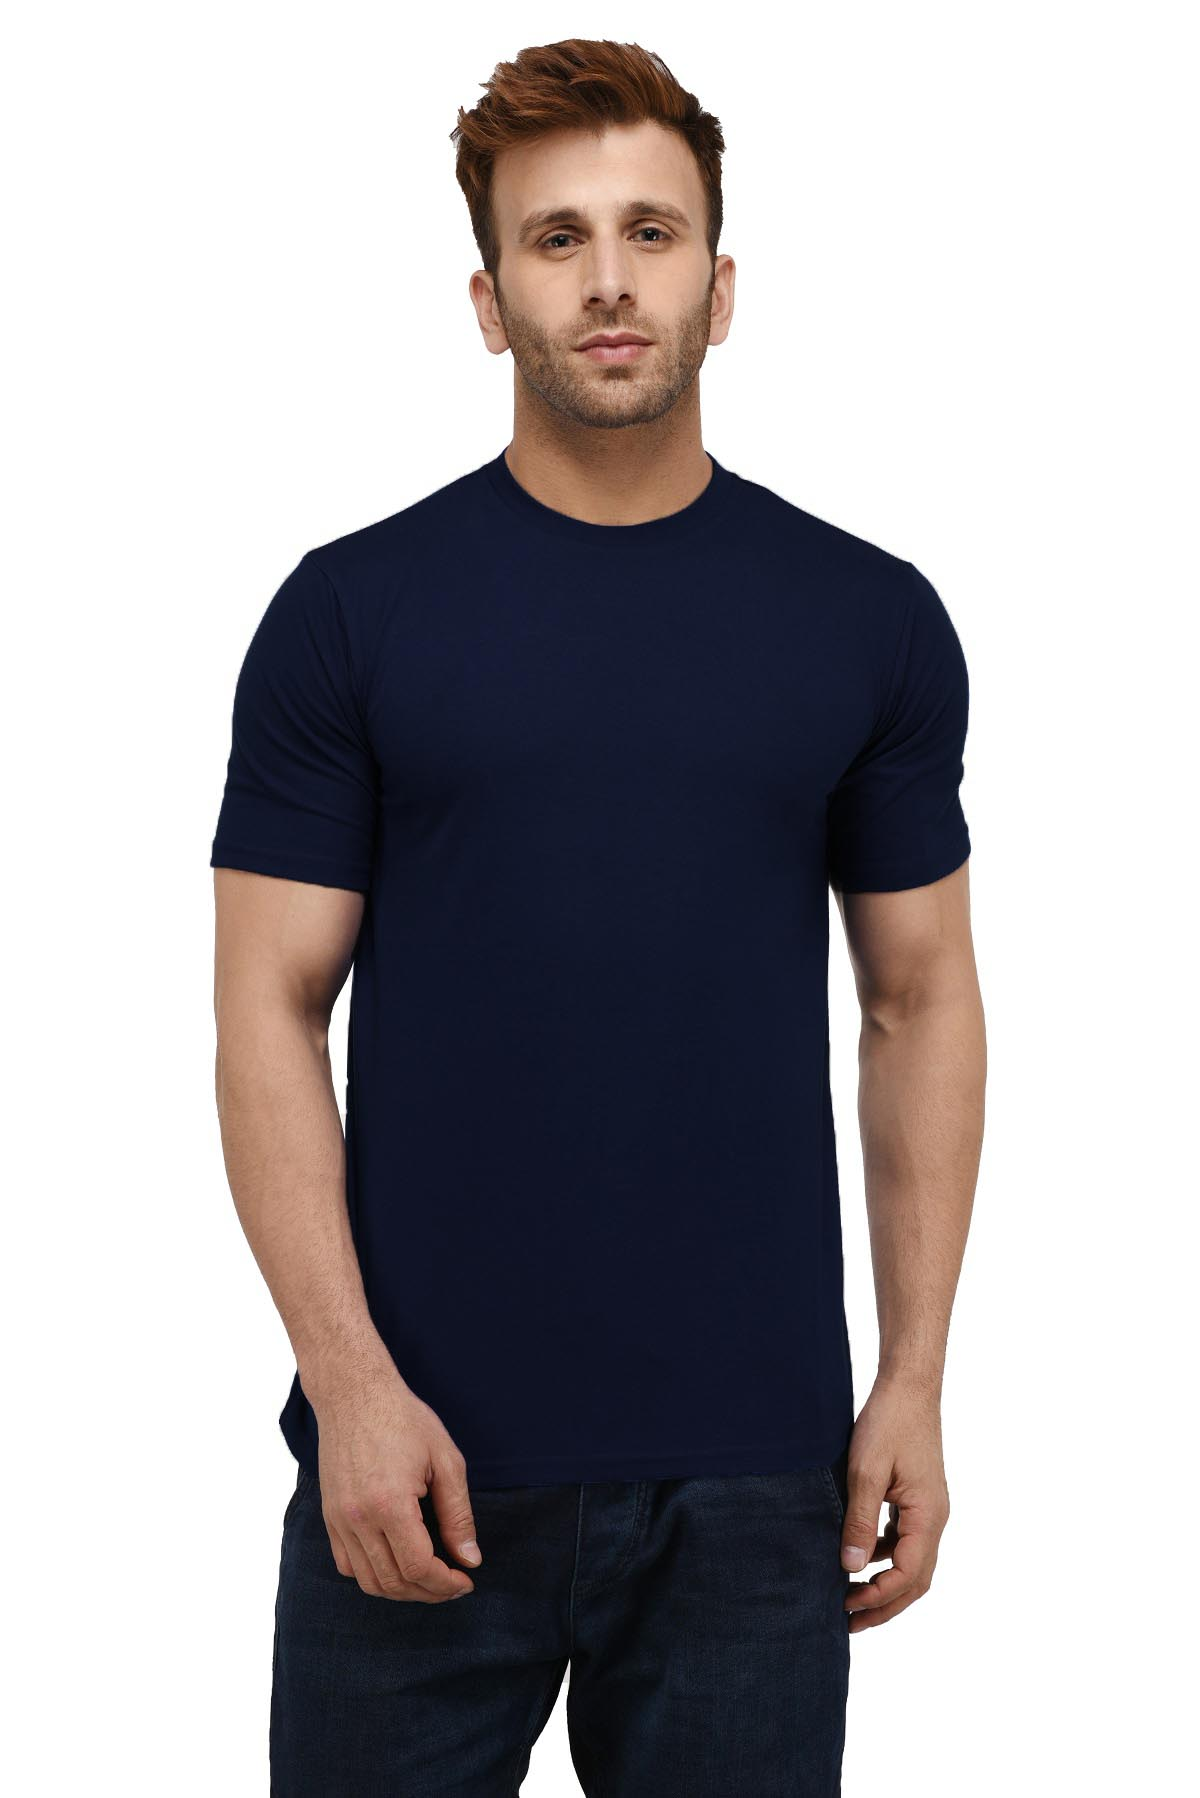 London Hills Men's Pure Cotton Solid Half Sleeve Round Neck Regular Fit Dark Blue T-Shirt (LH_T_R_HF_452)